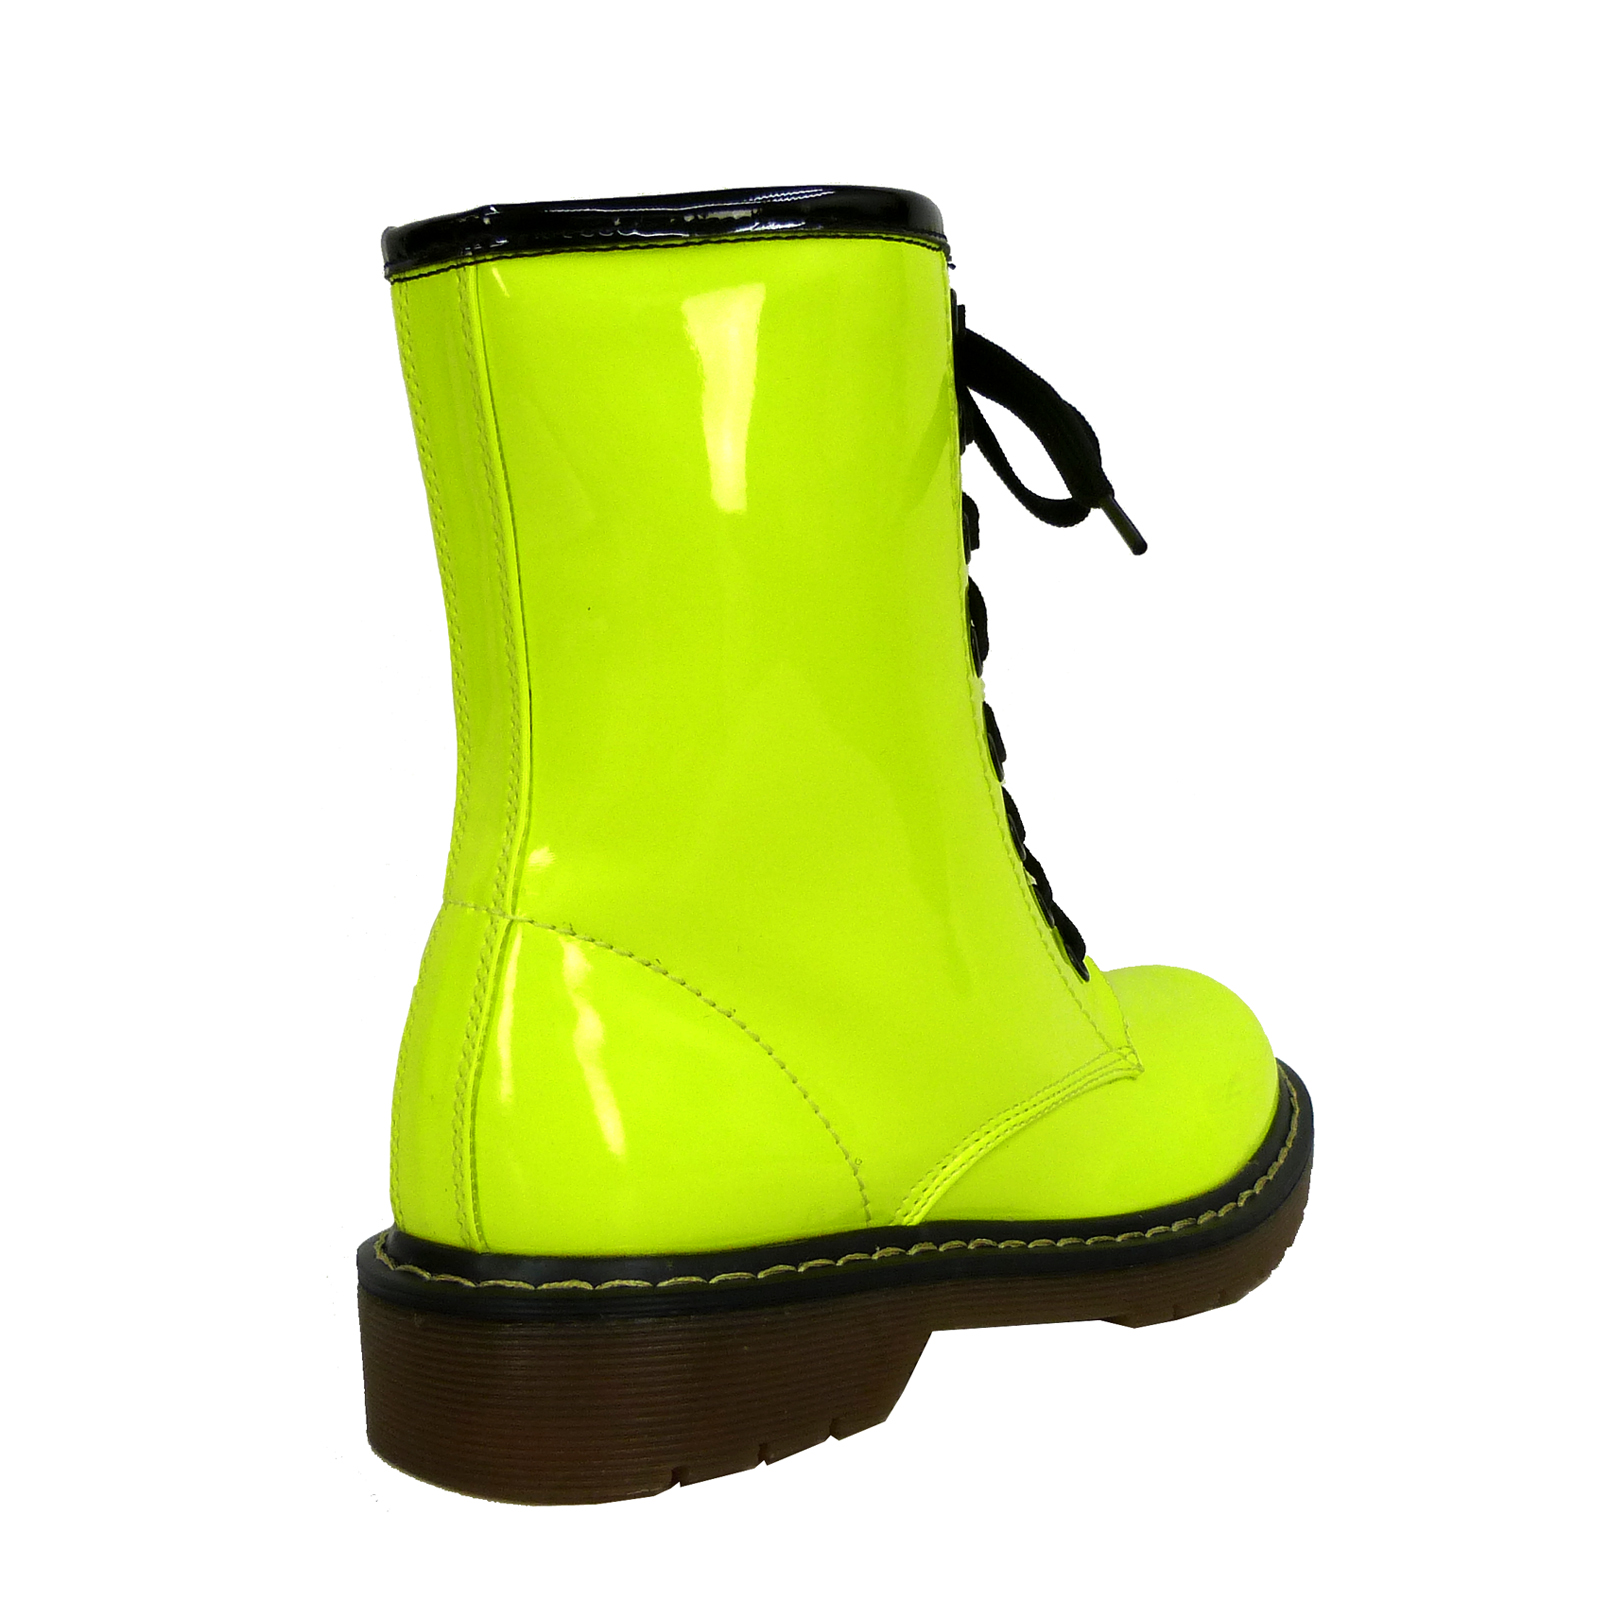 Creative NEW QUPID Women Lace Up Combat Military Mid Calf Boots Sz Neon Yellow